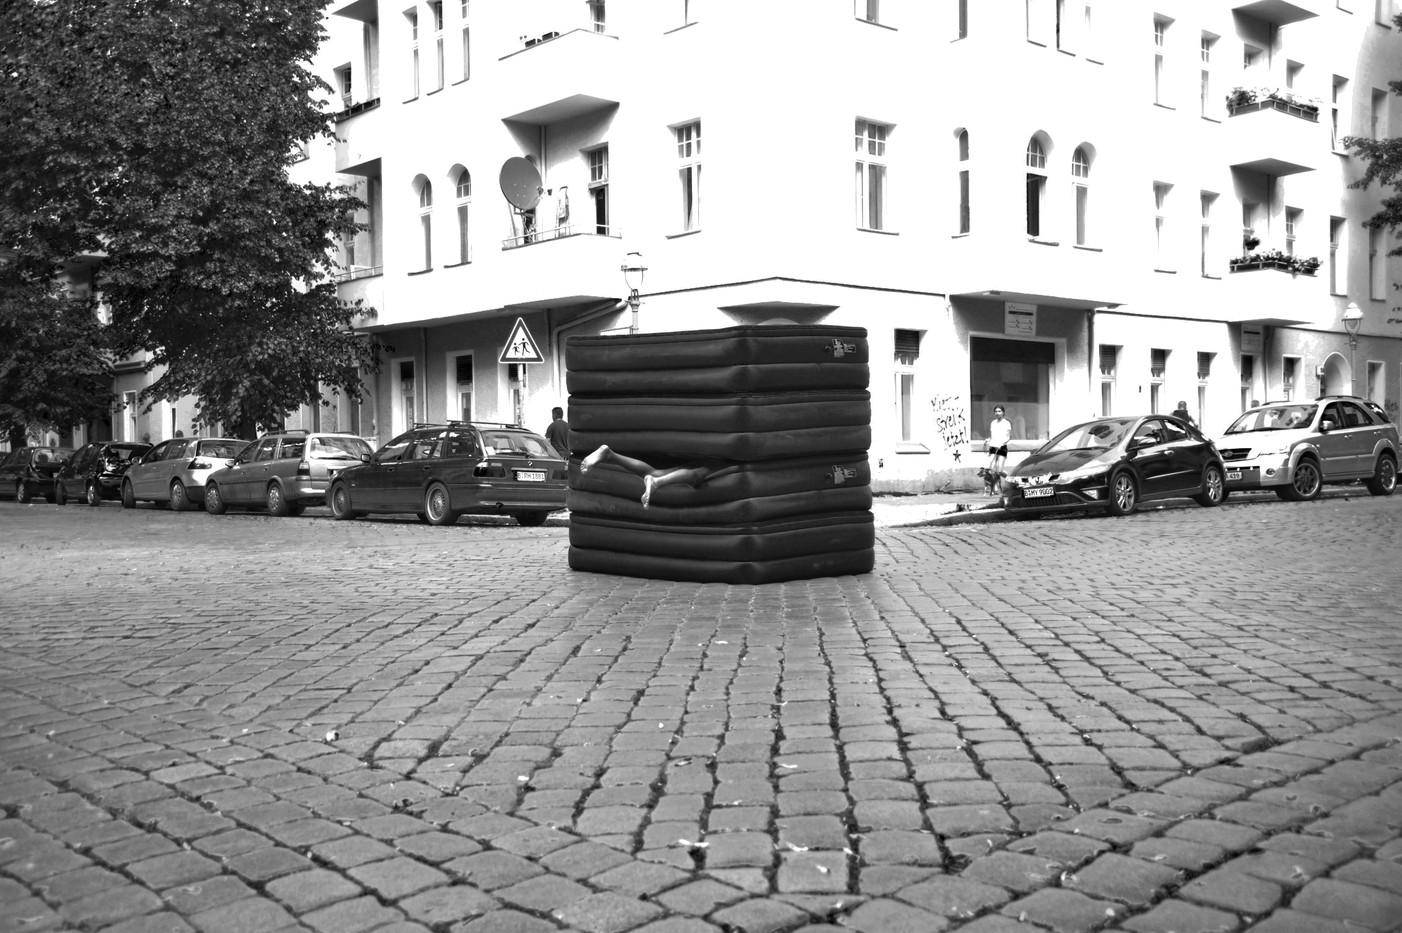 Action for Berlin - Germany 2010 - Photography of performance C-print - 3x (20cm x 14,5cm) - Edition of 5 + 1EA